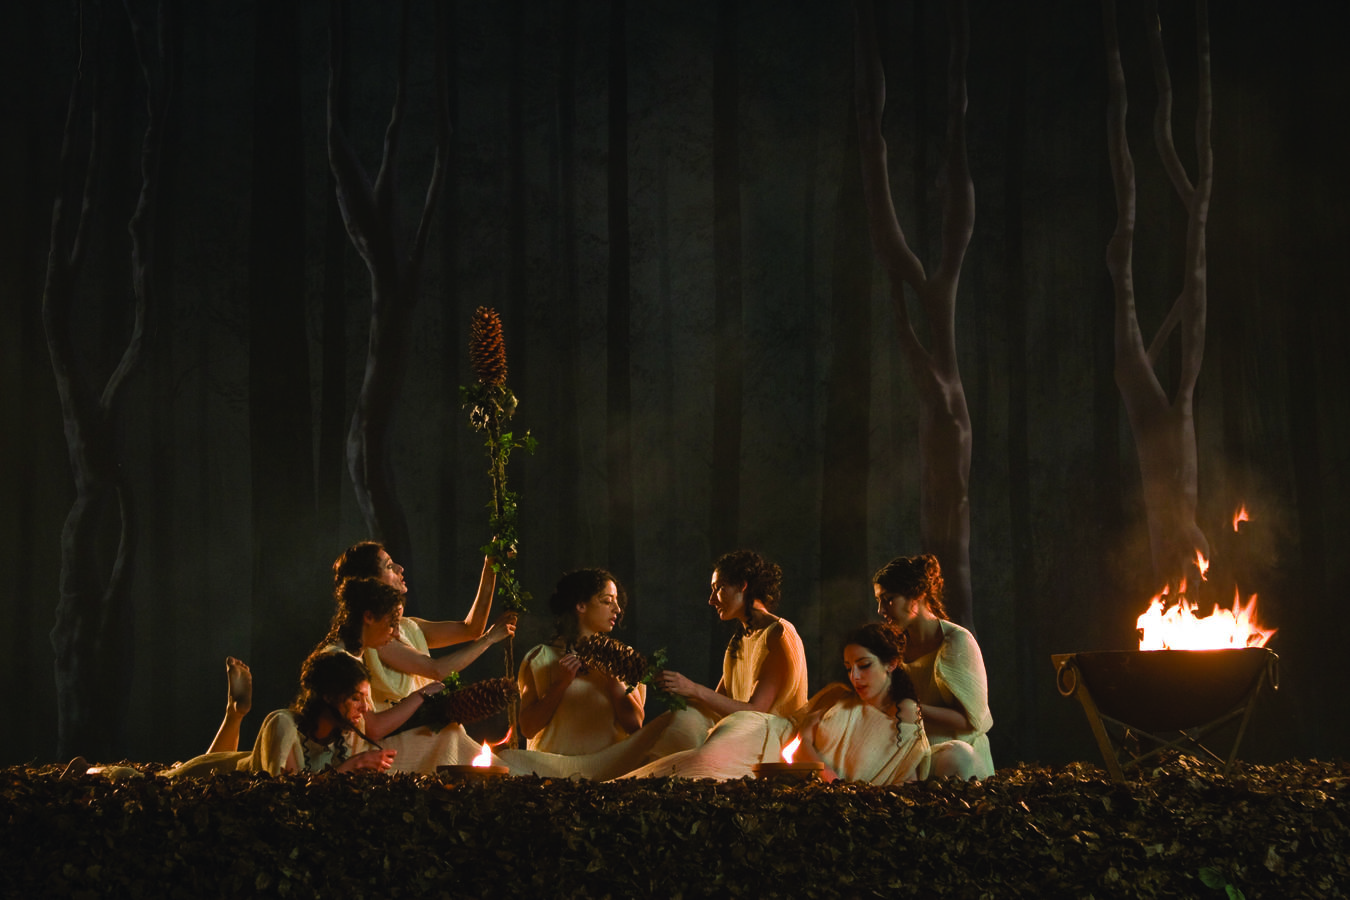 Maenads in the woods, from the film installation The Death of Pentheus